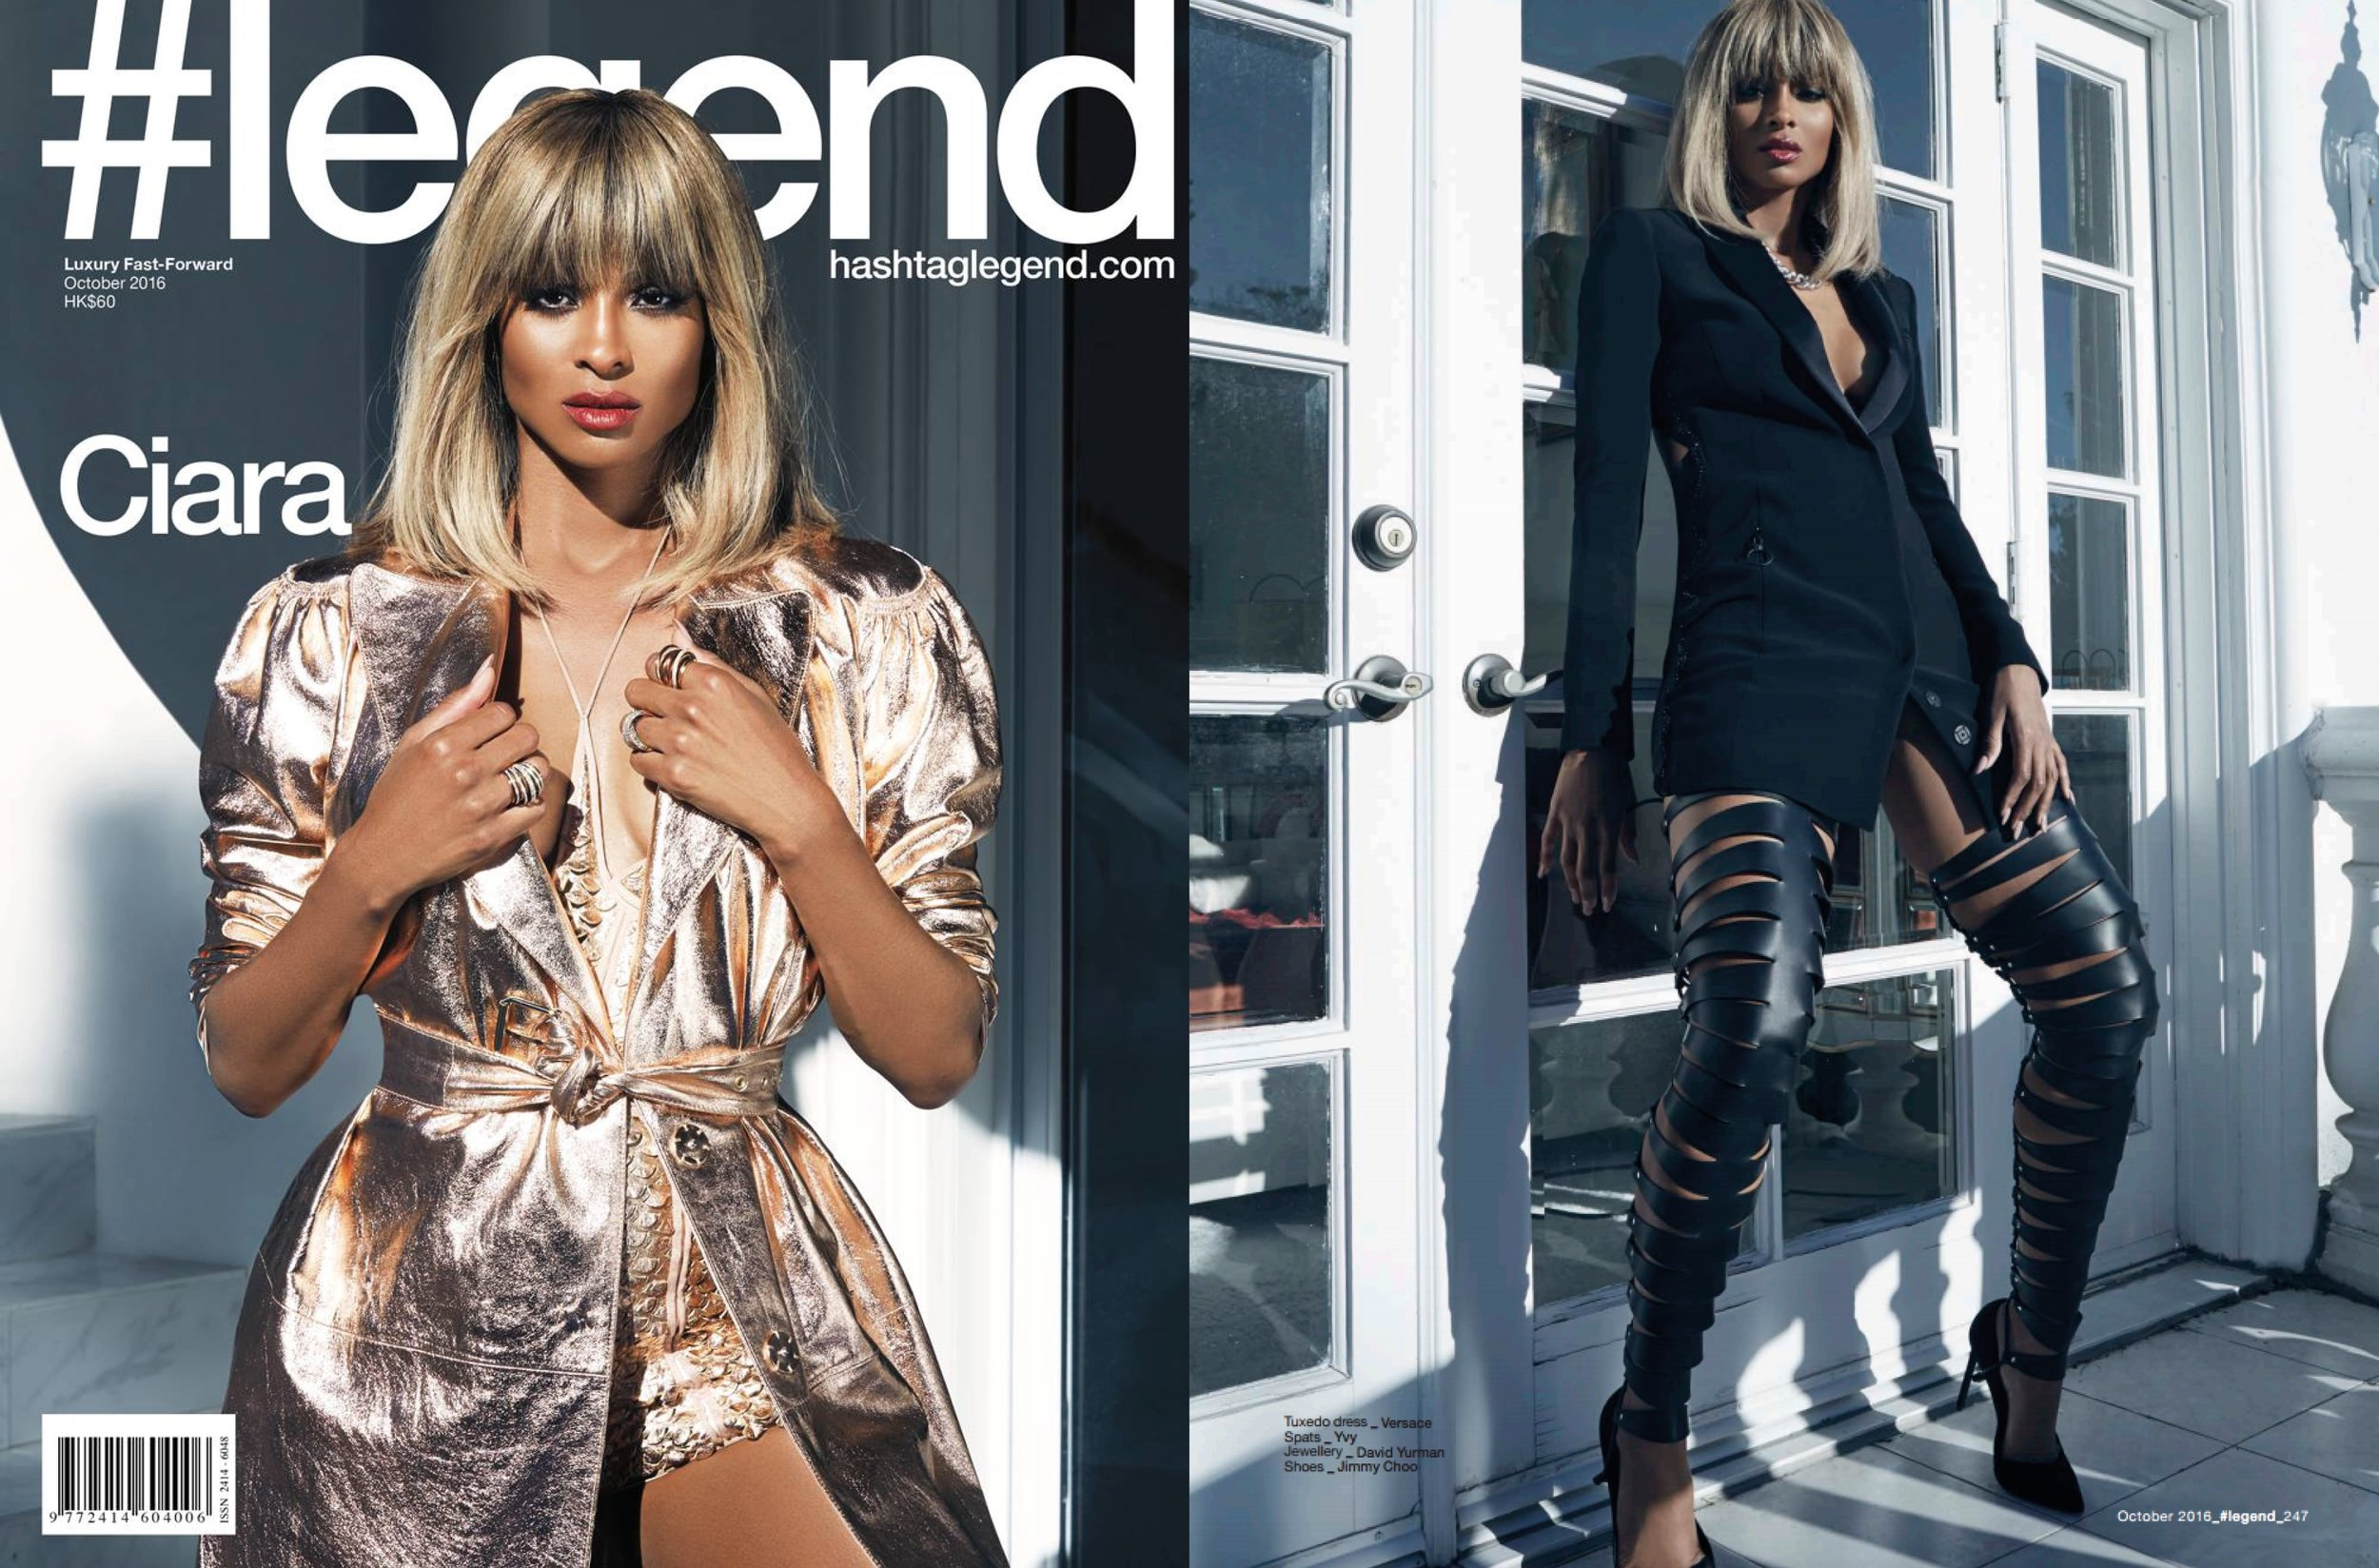 CIARA - #LEGEND